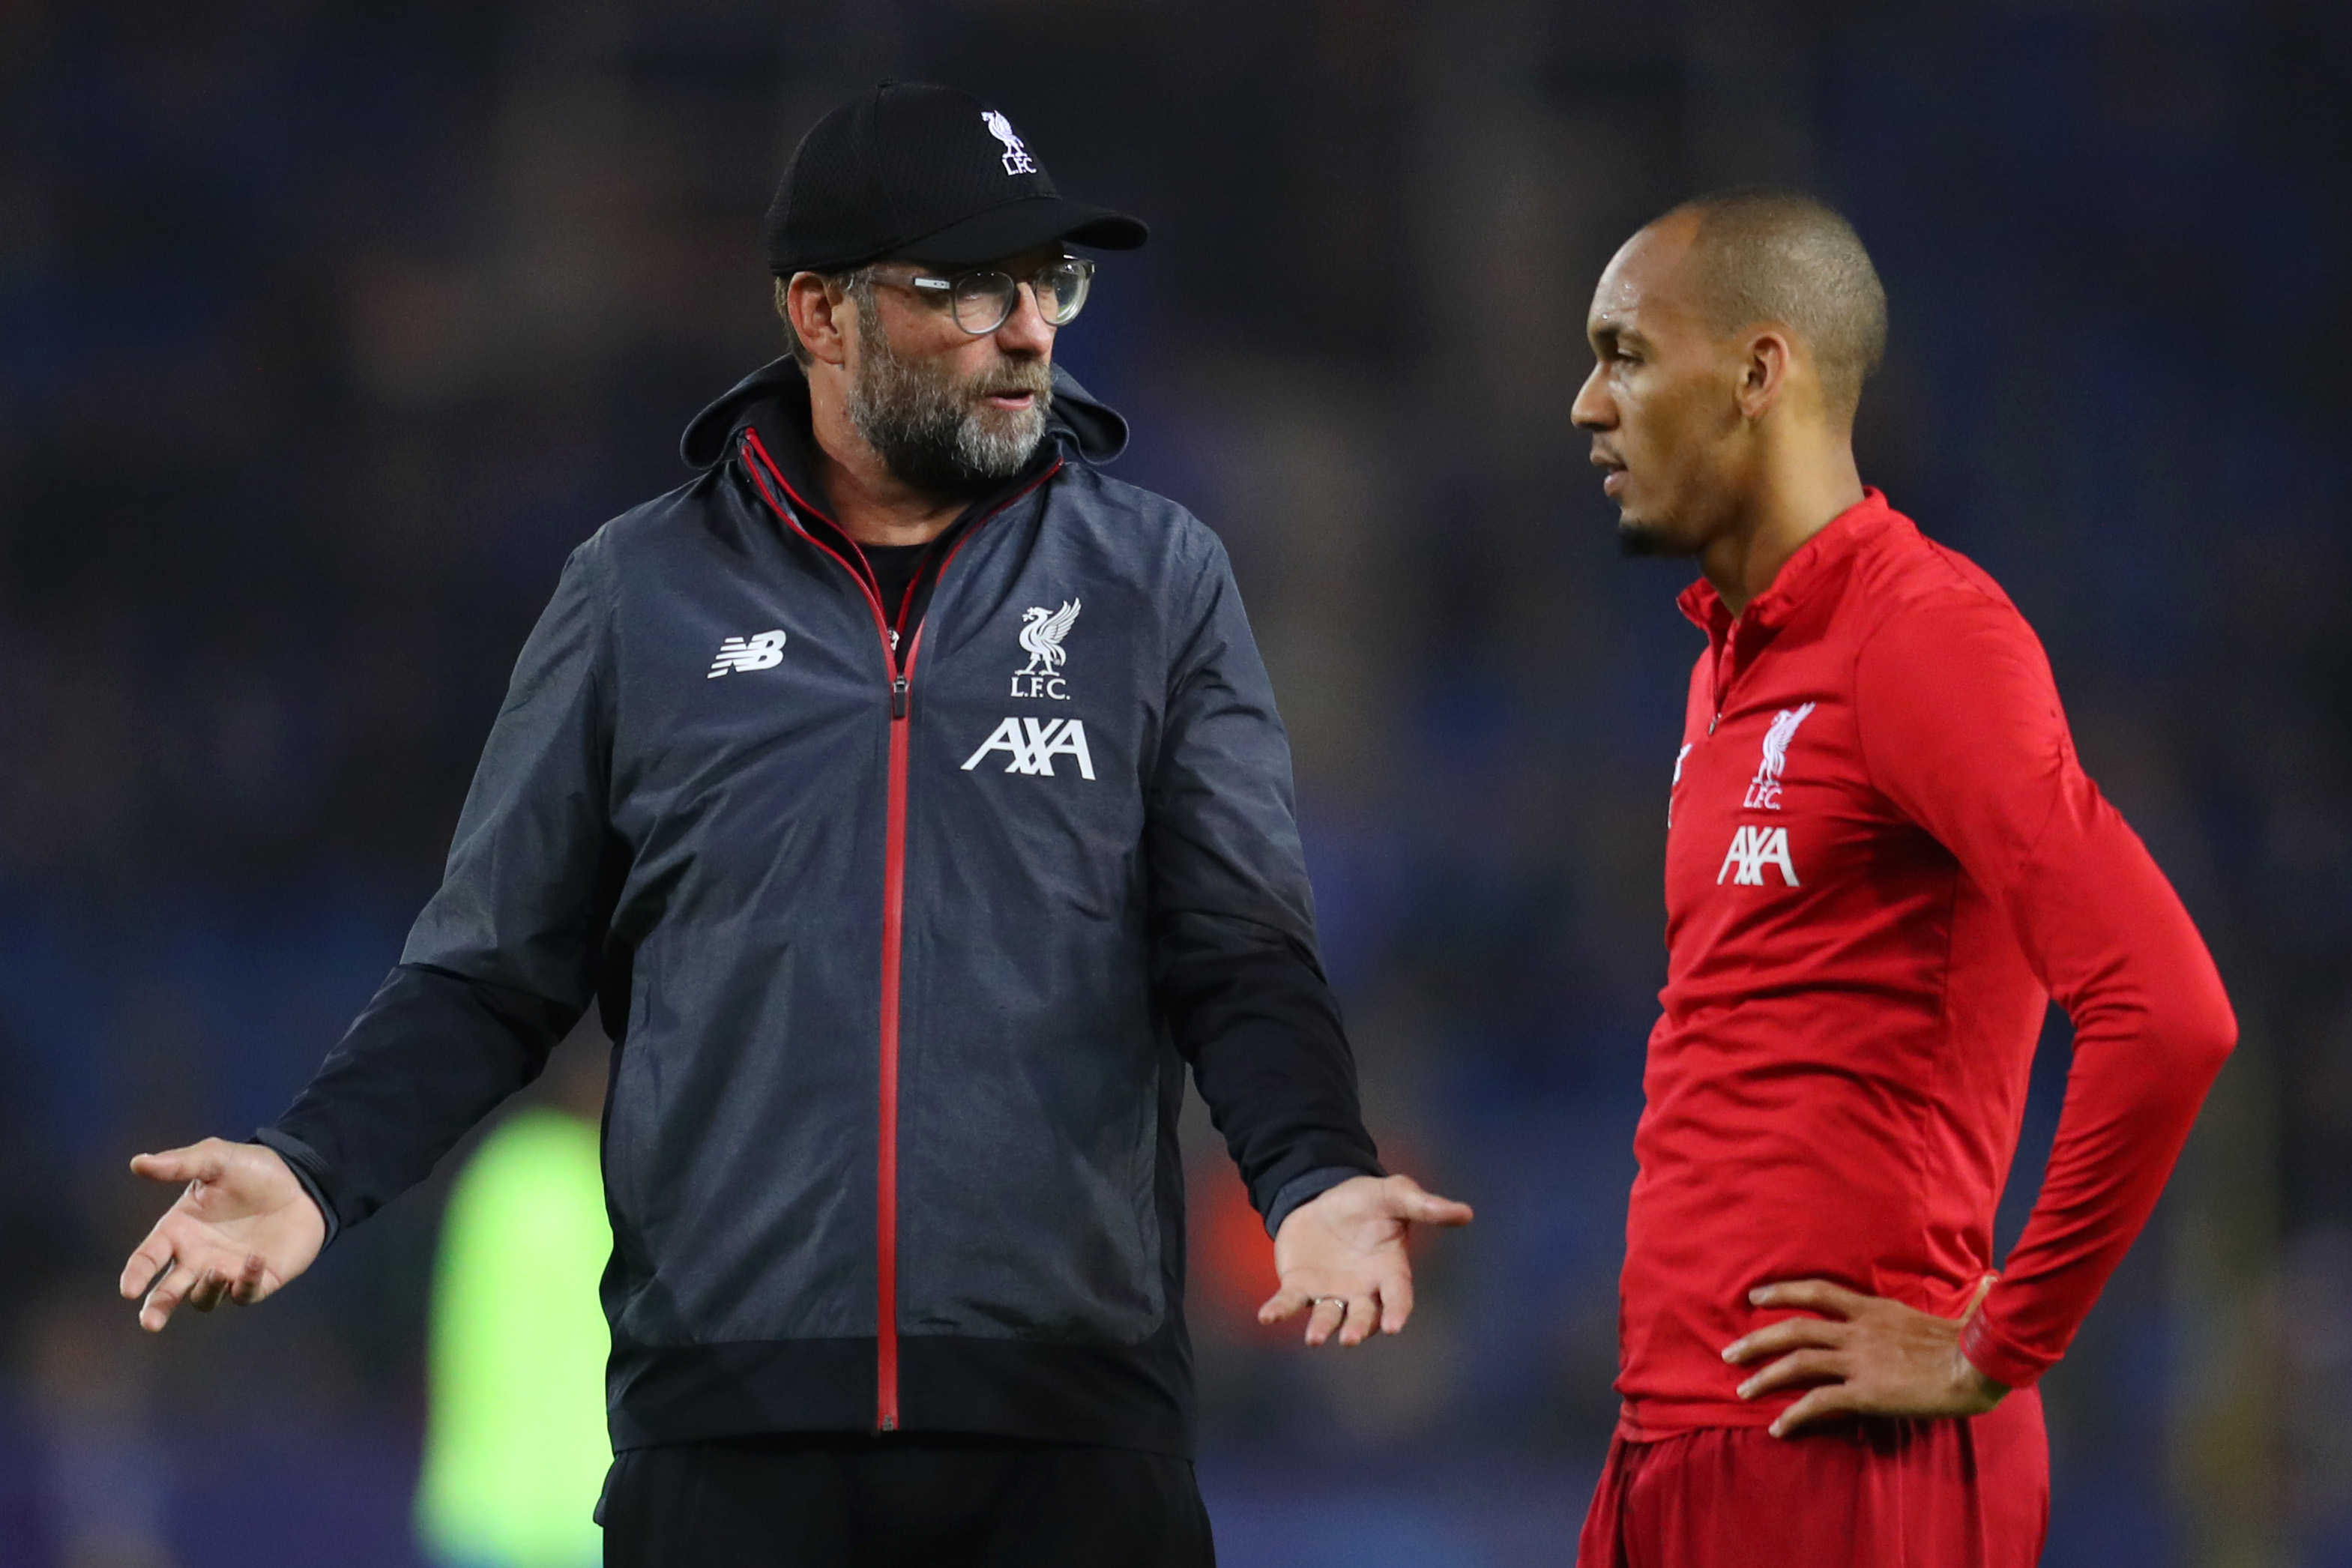 Fabinho is available after missing the game against Burnley. (Photo by Catherine Ivill/Getty Images)